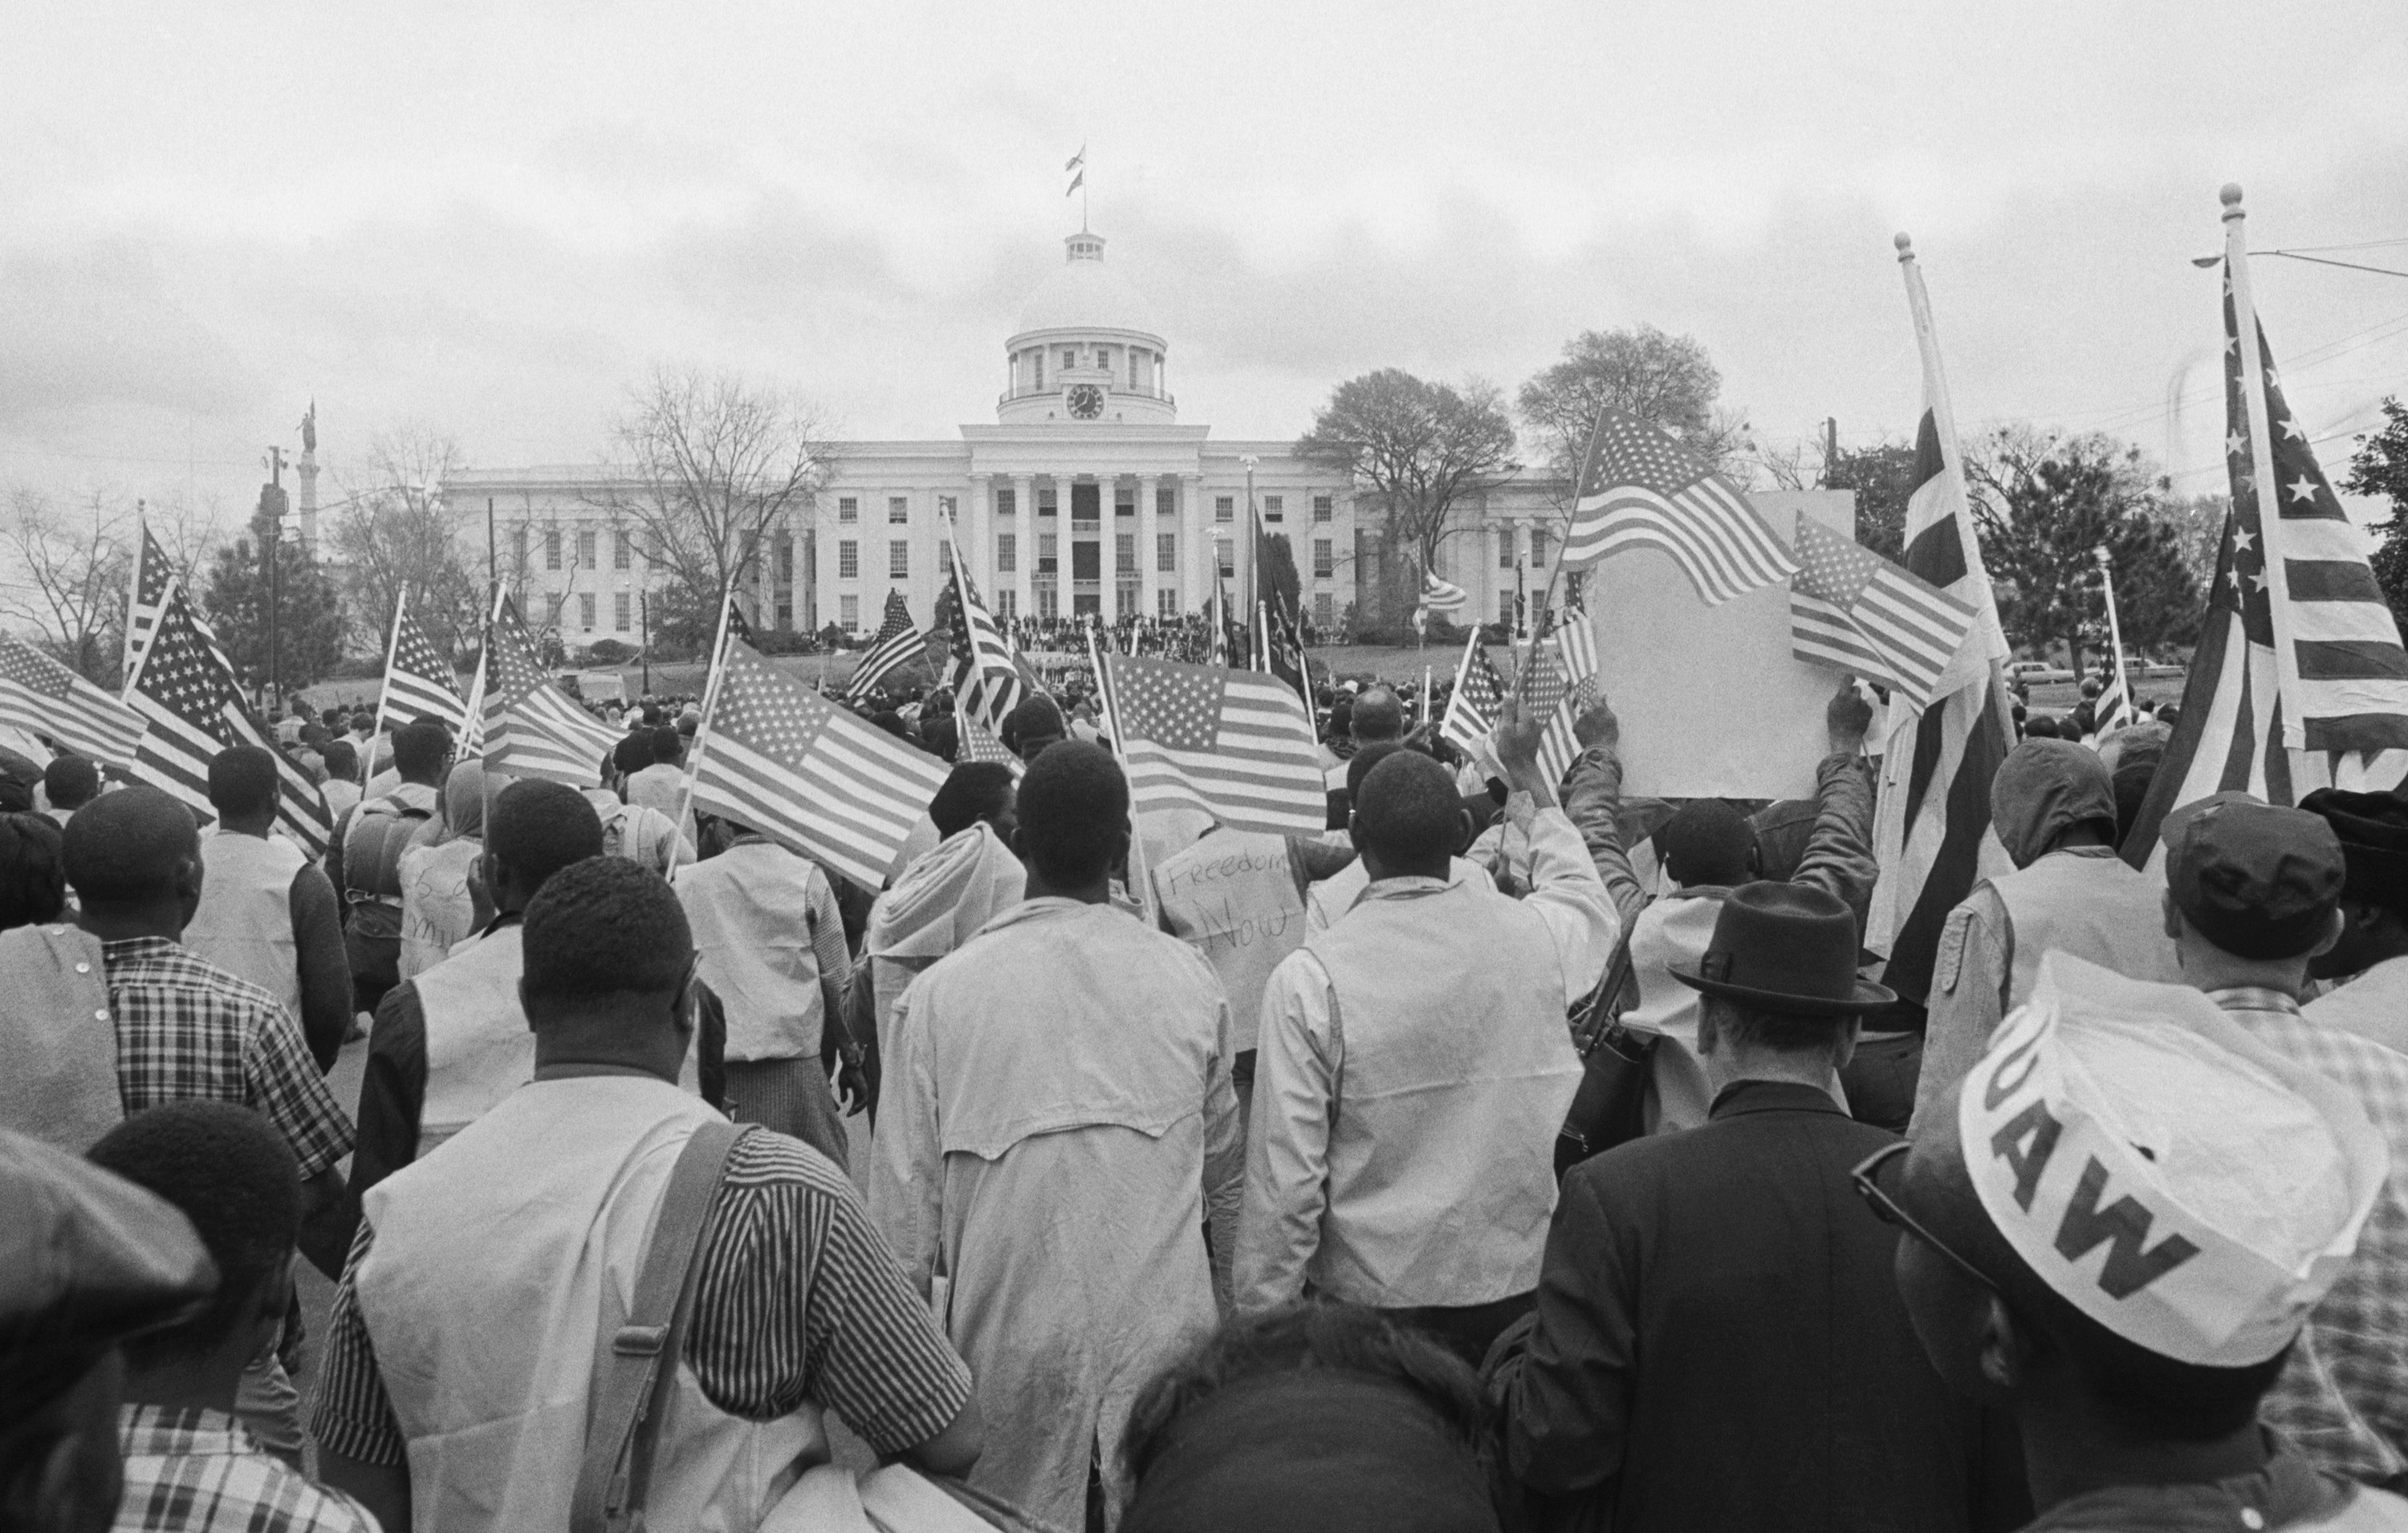 A crowd of black men and women carrying American flags are seen from behind as they stand in front of the capitol building in Alabama